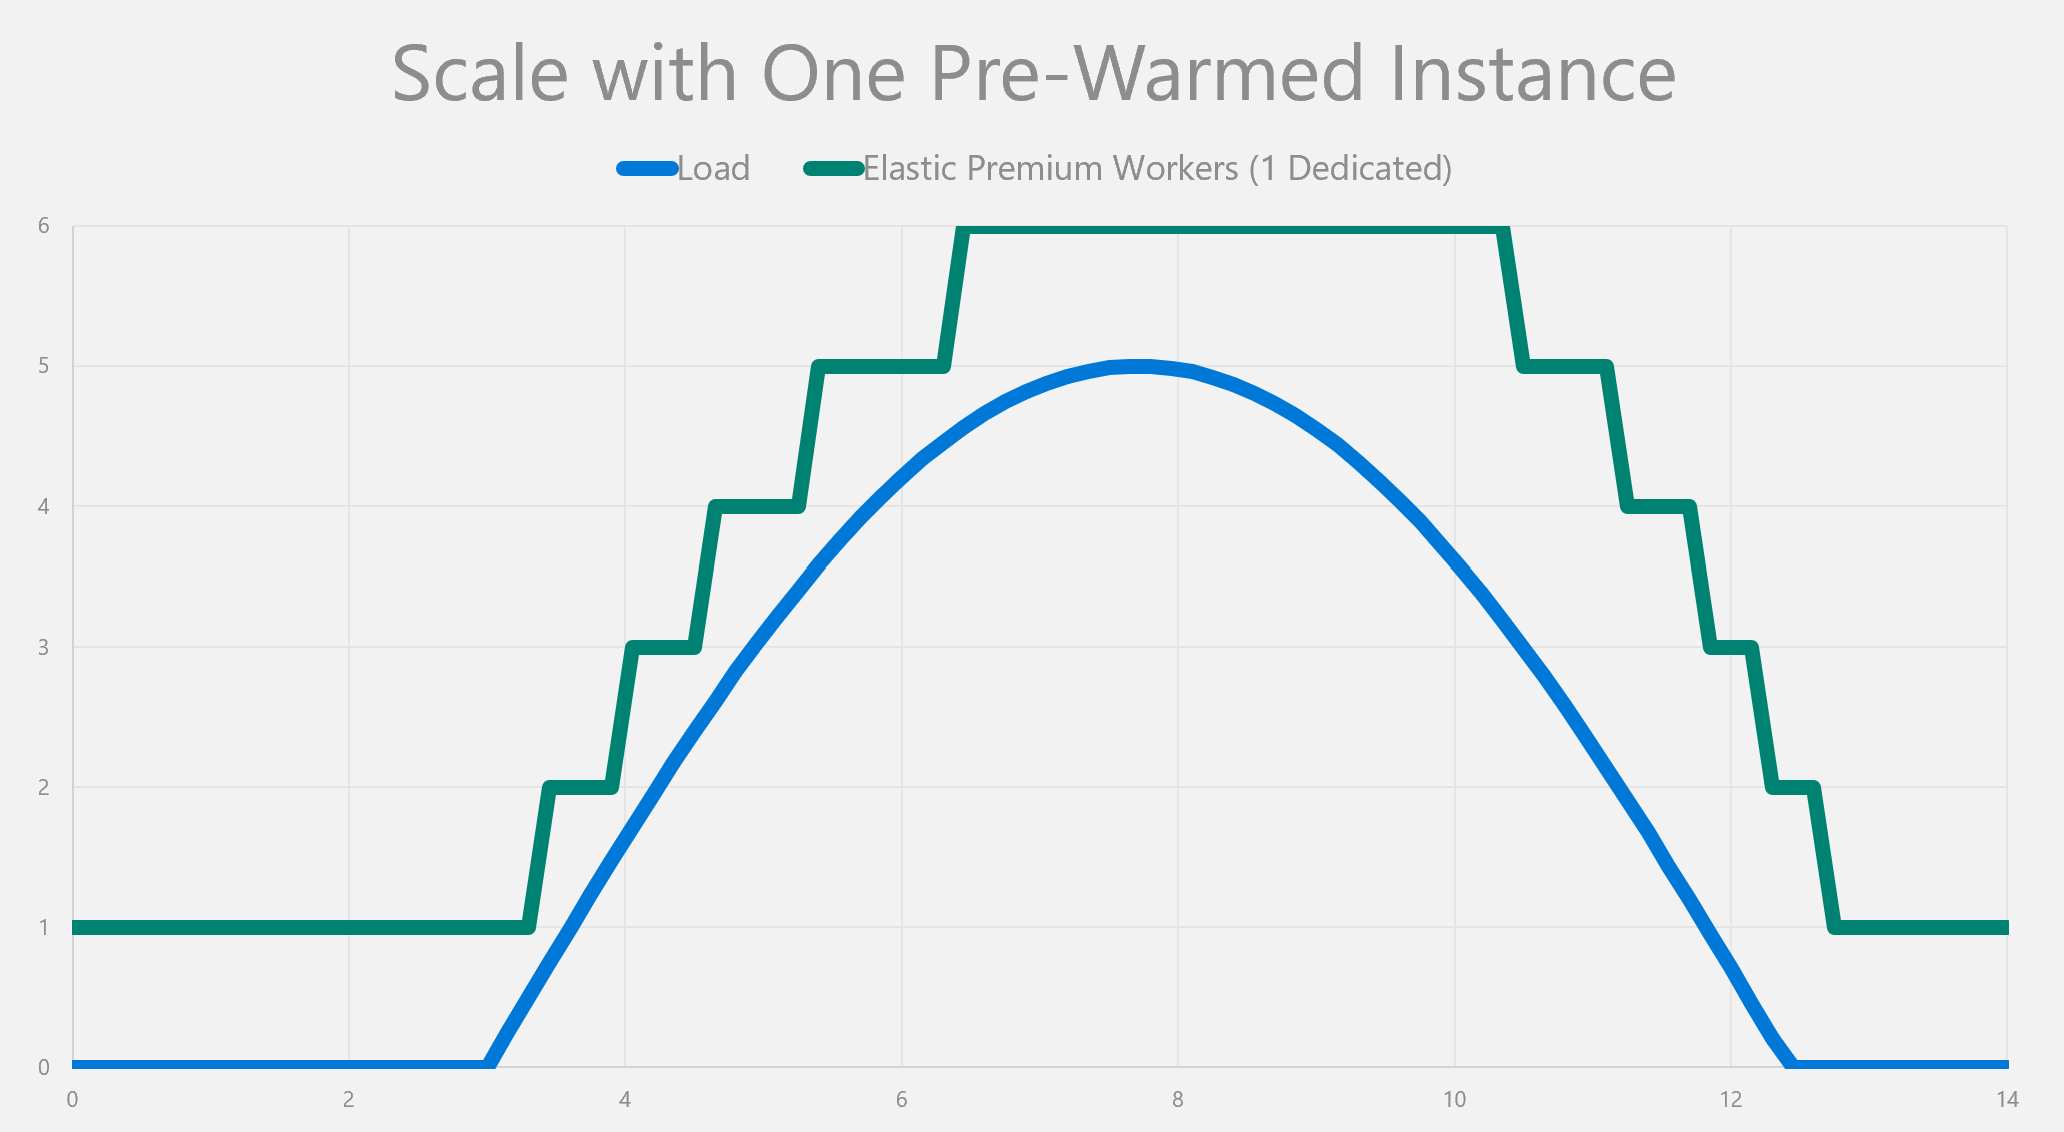 Scale with One Pre-Warmed Instance